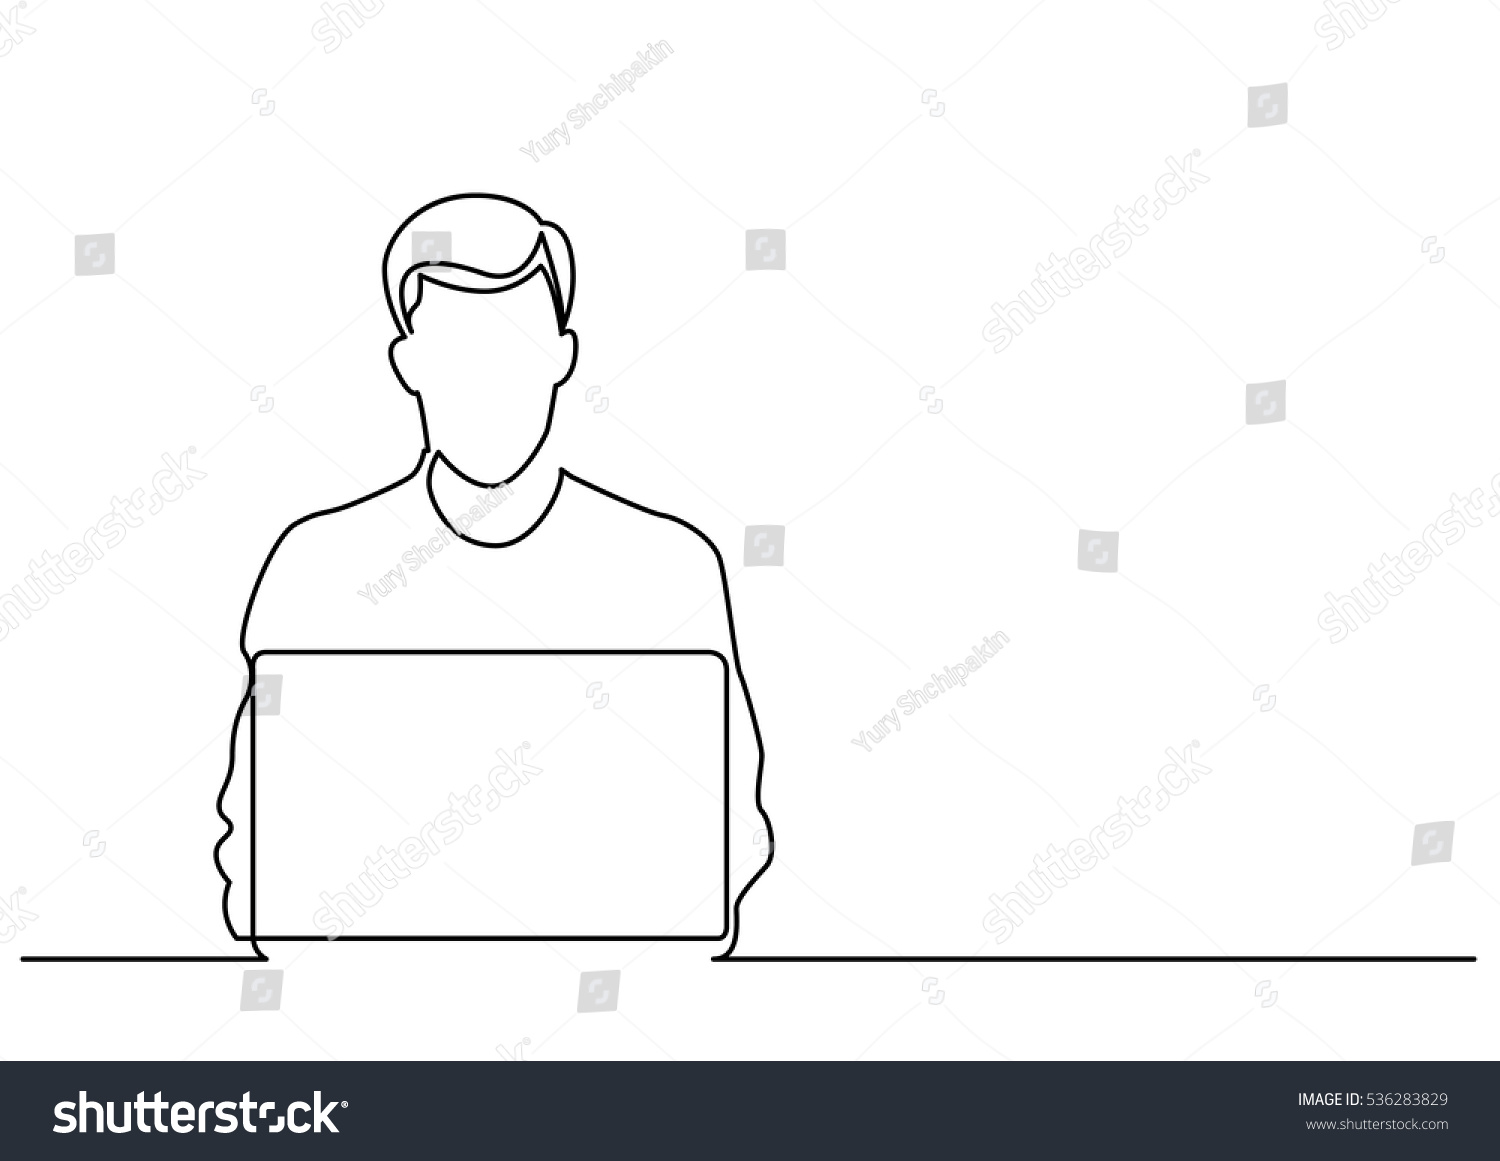 Line Drawing Man : Continuous line drawing man sitting behind stock vector